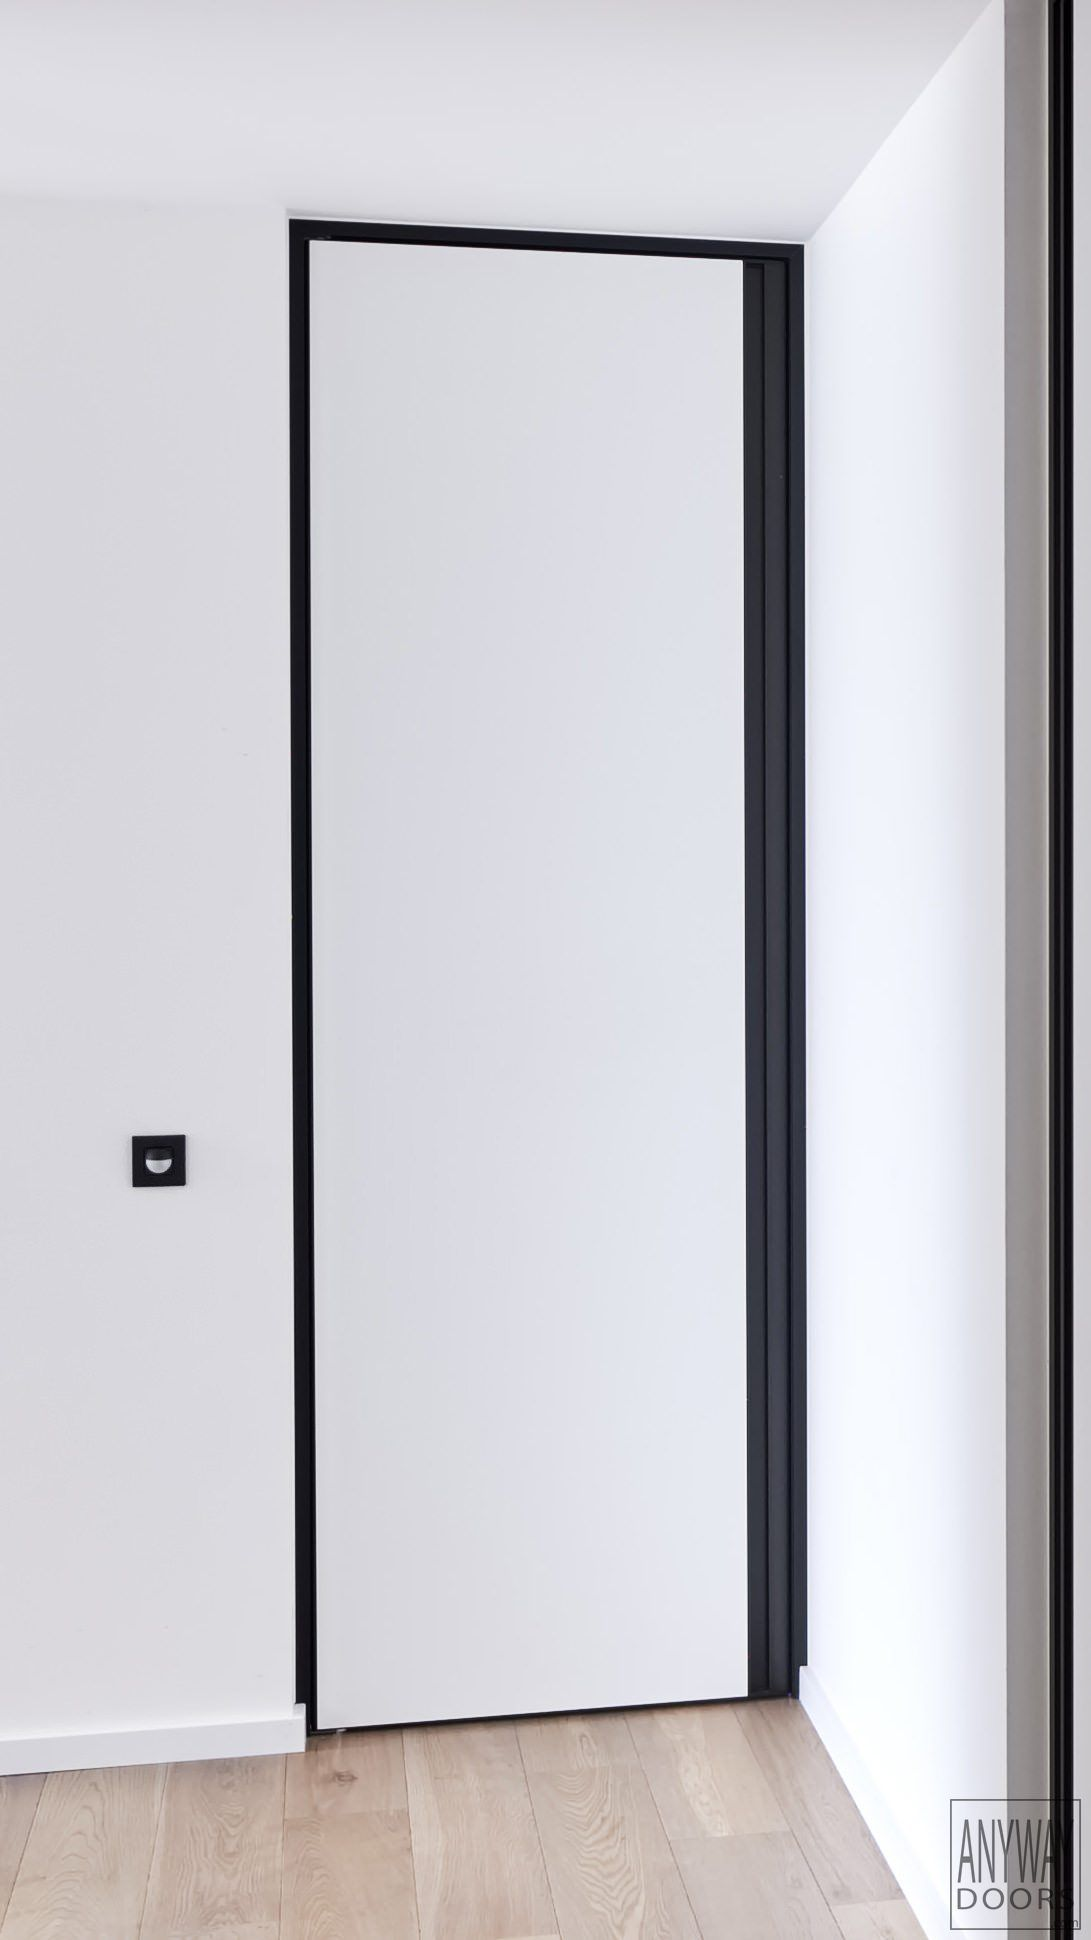 Le Meilleur White Interior Door With A Black Door Frame And Built In Ce Mois Ci